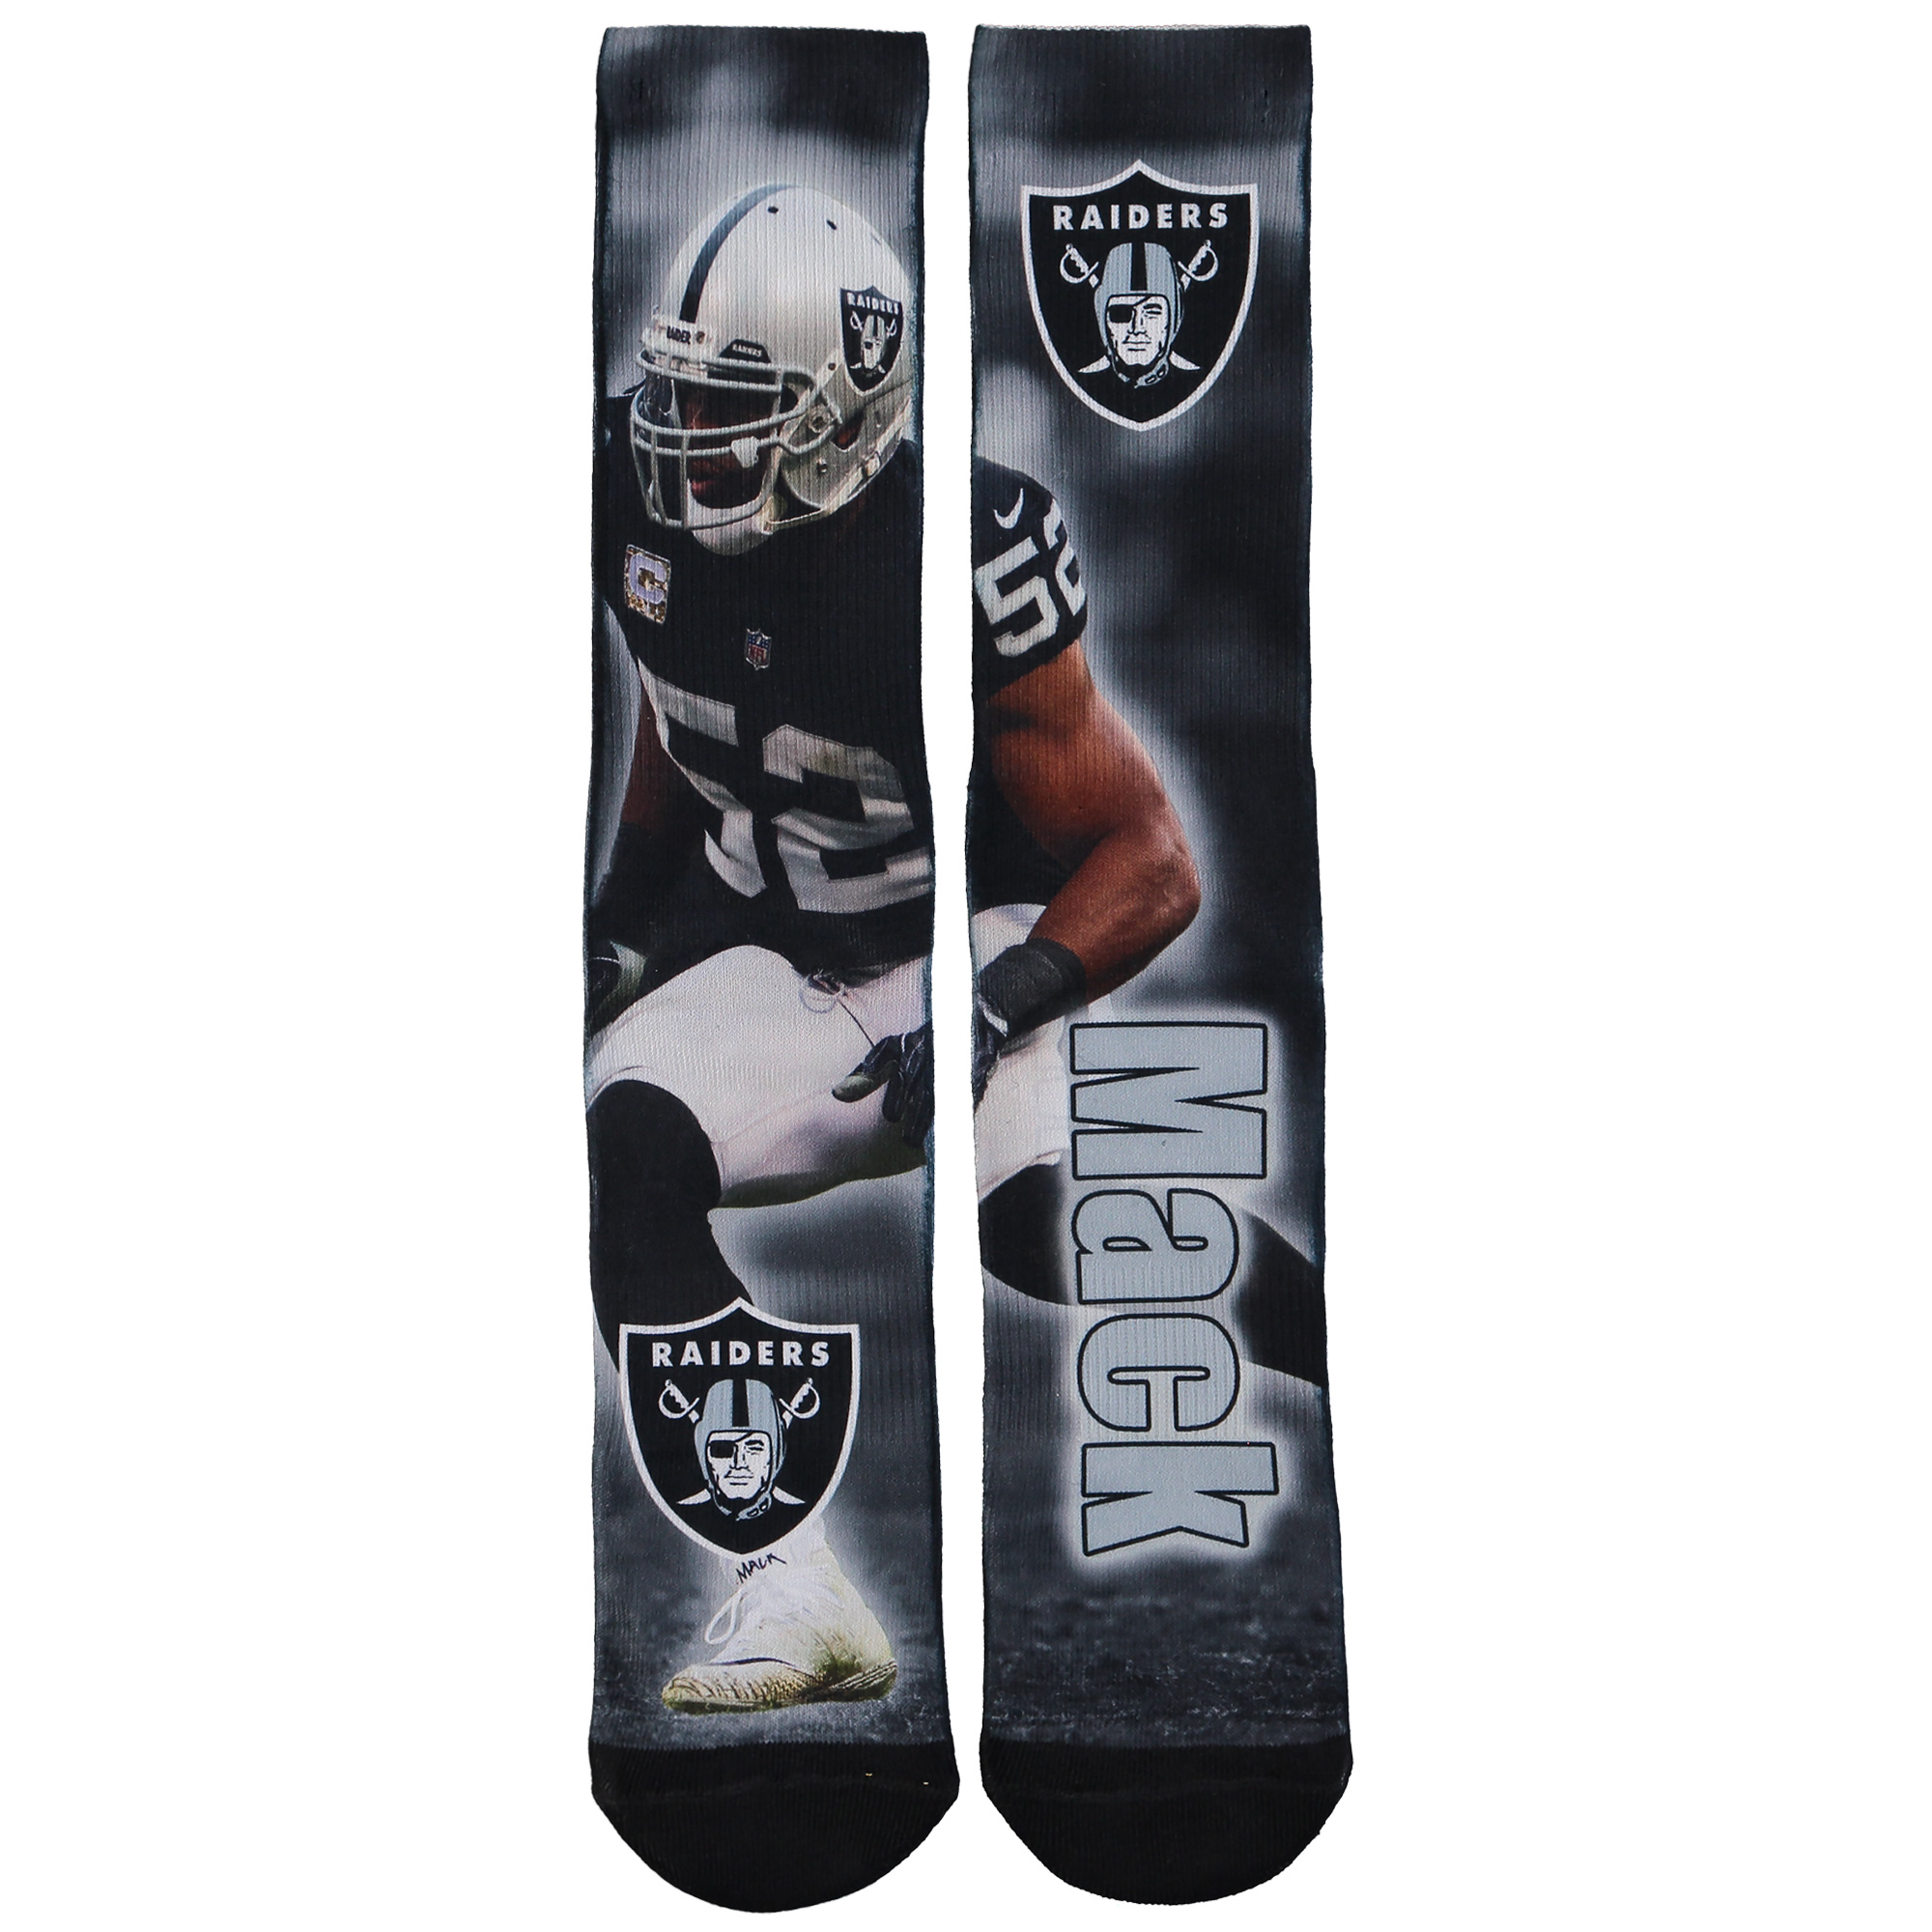 Khalil Mack Oakland Raiders For Bare Feet Player Montage Crew Socks - L